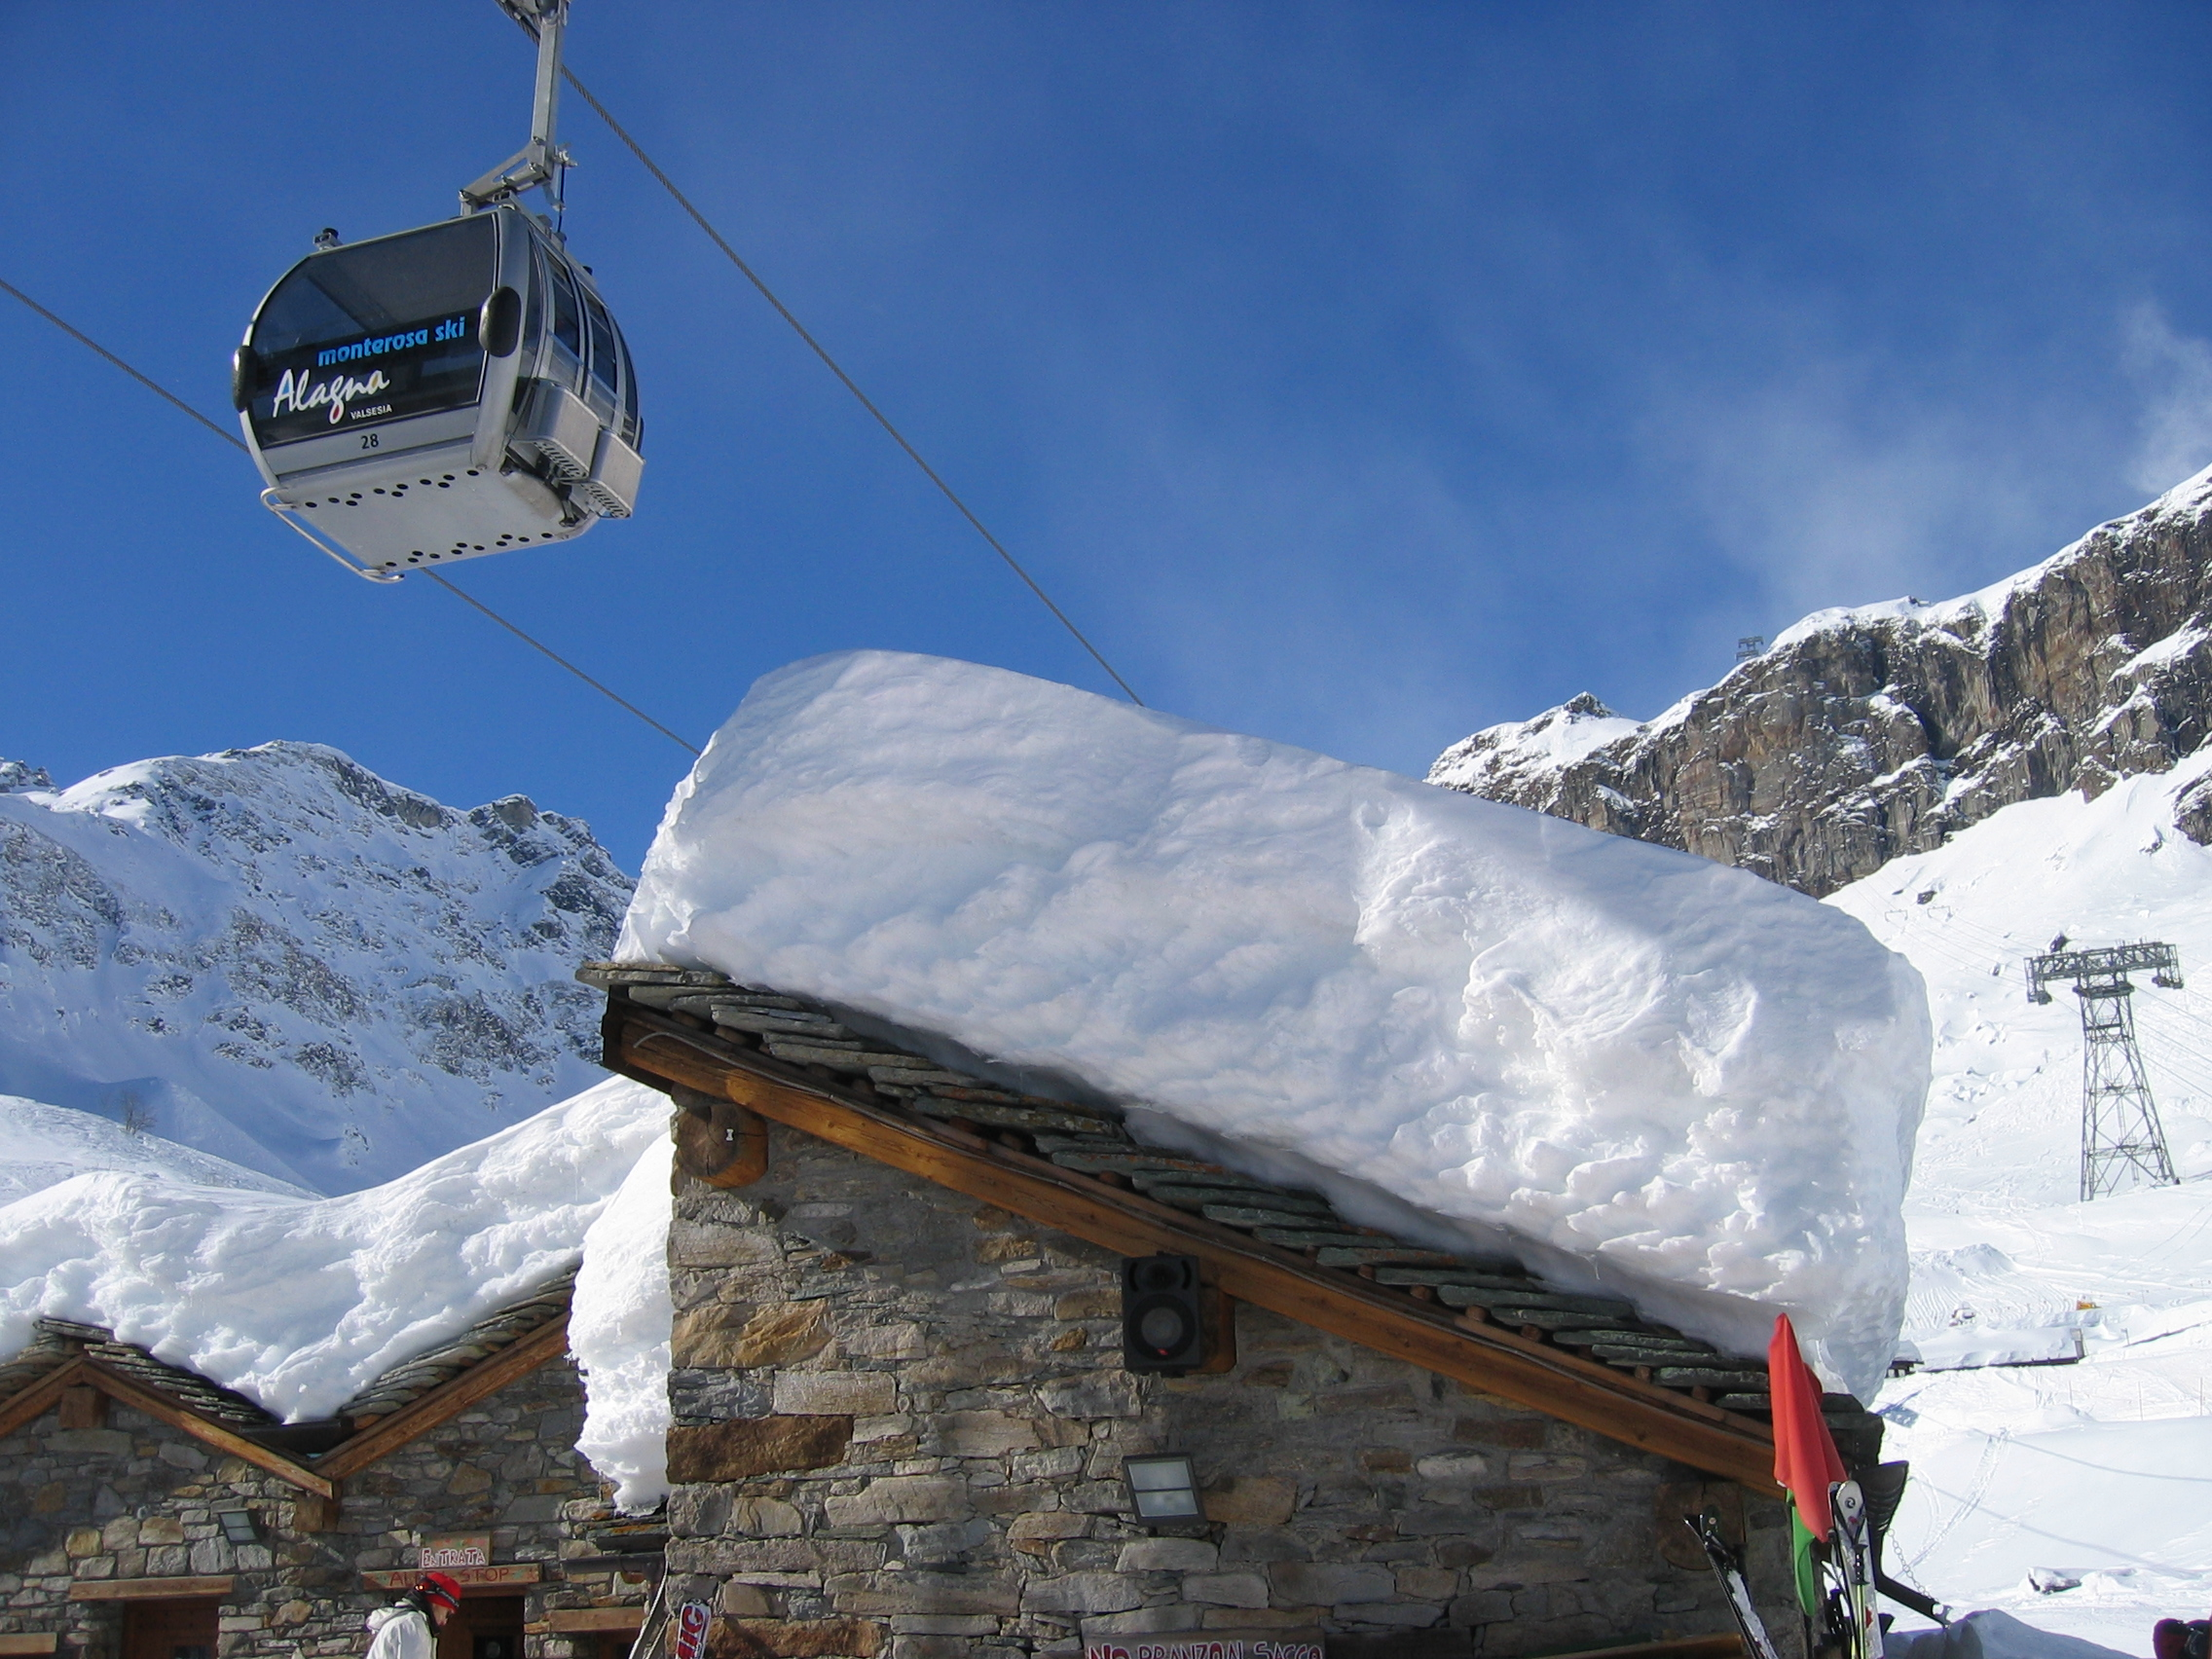 a good year of skiing, Alagna